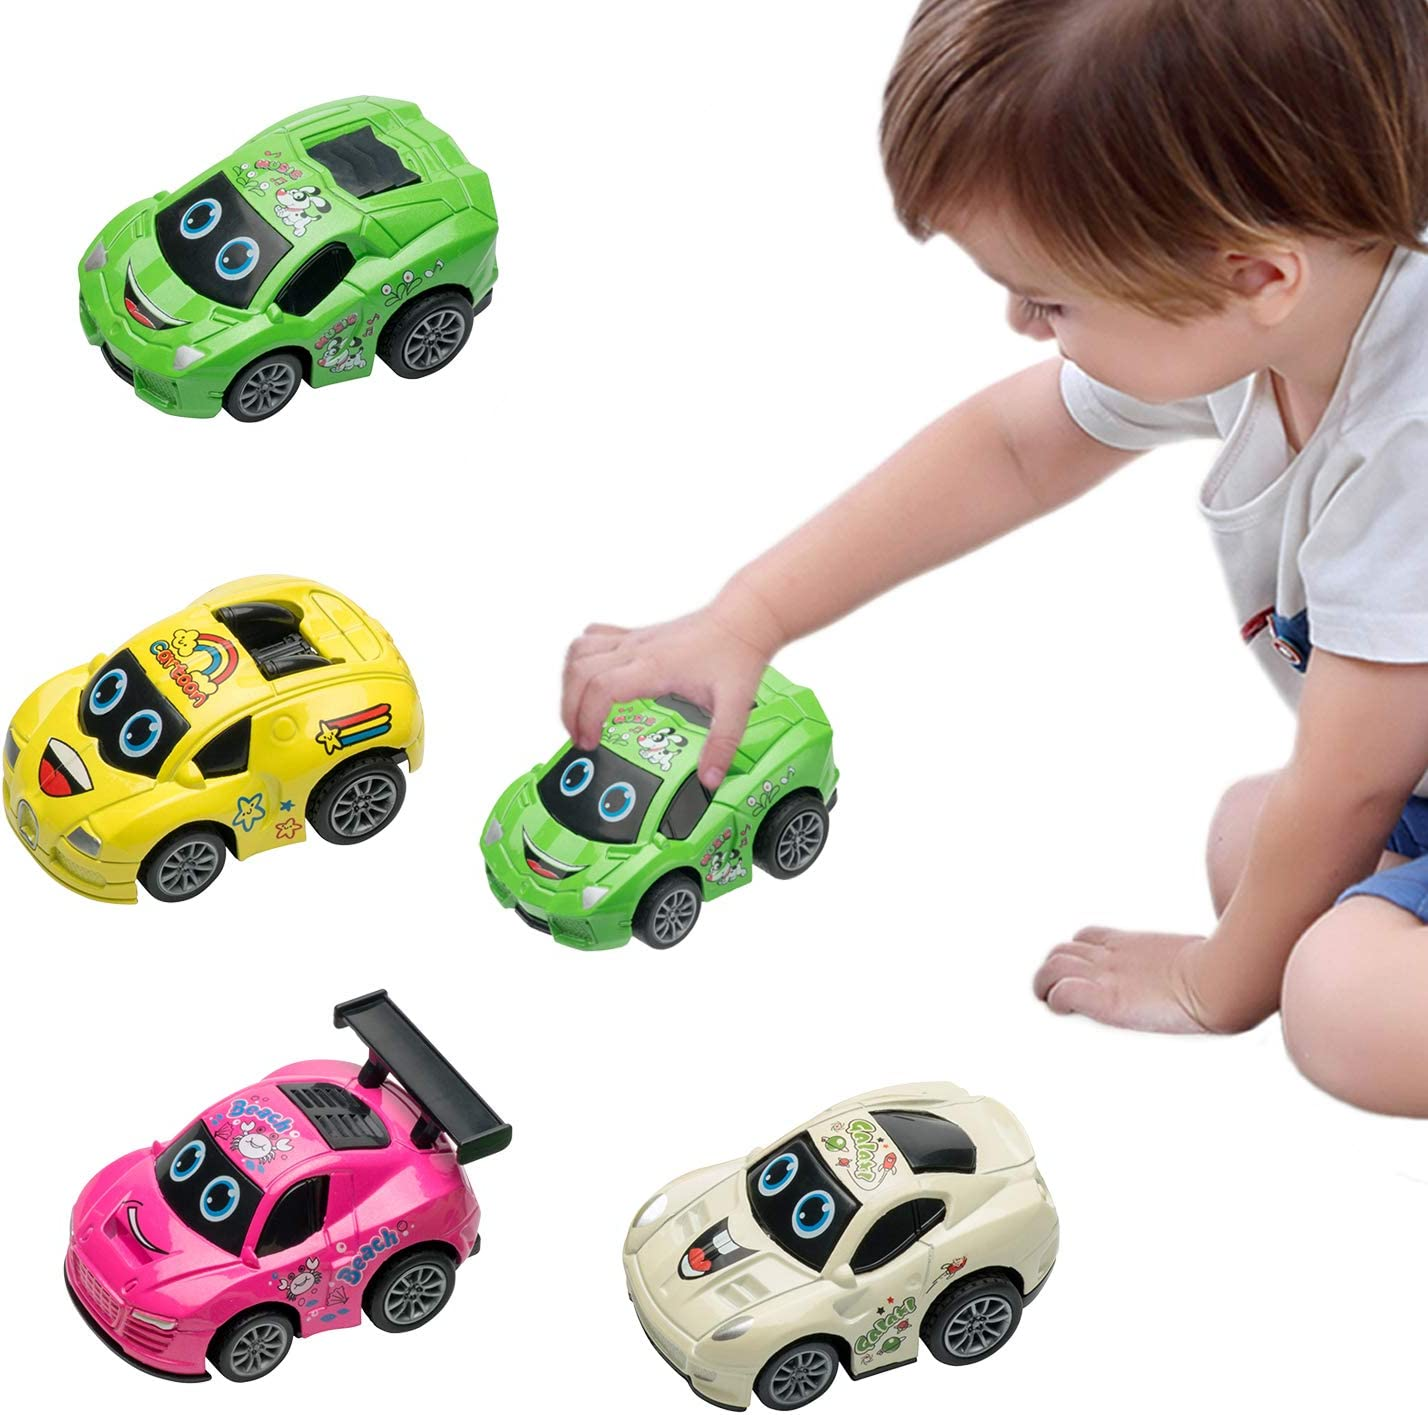 HUENLYEL Pull Back Toys Cars for Toddlers 1 2 3 Year Old Boys Girls Gift,Push and Go Friction Powered Cars Toys for Toddlers,Pull Back Vehicles Car Toys for Toddlers Christmas Birthday Gift